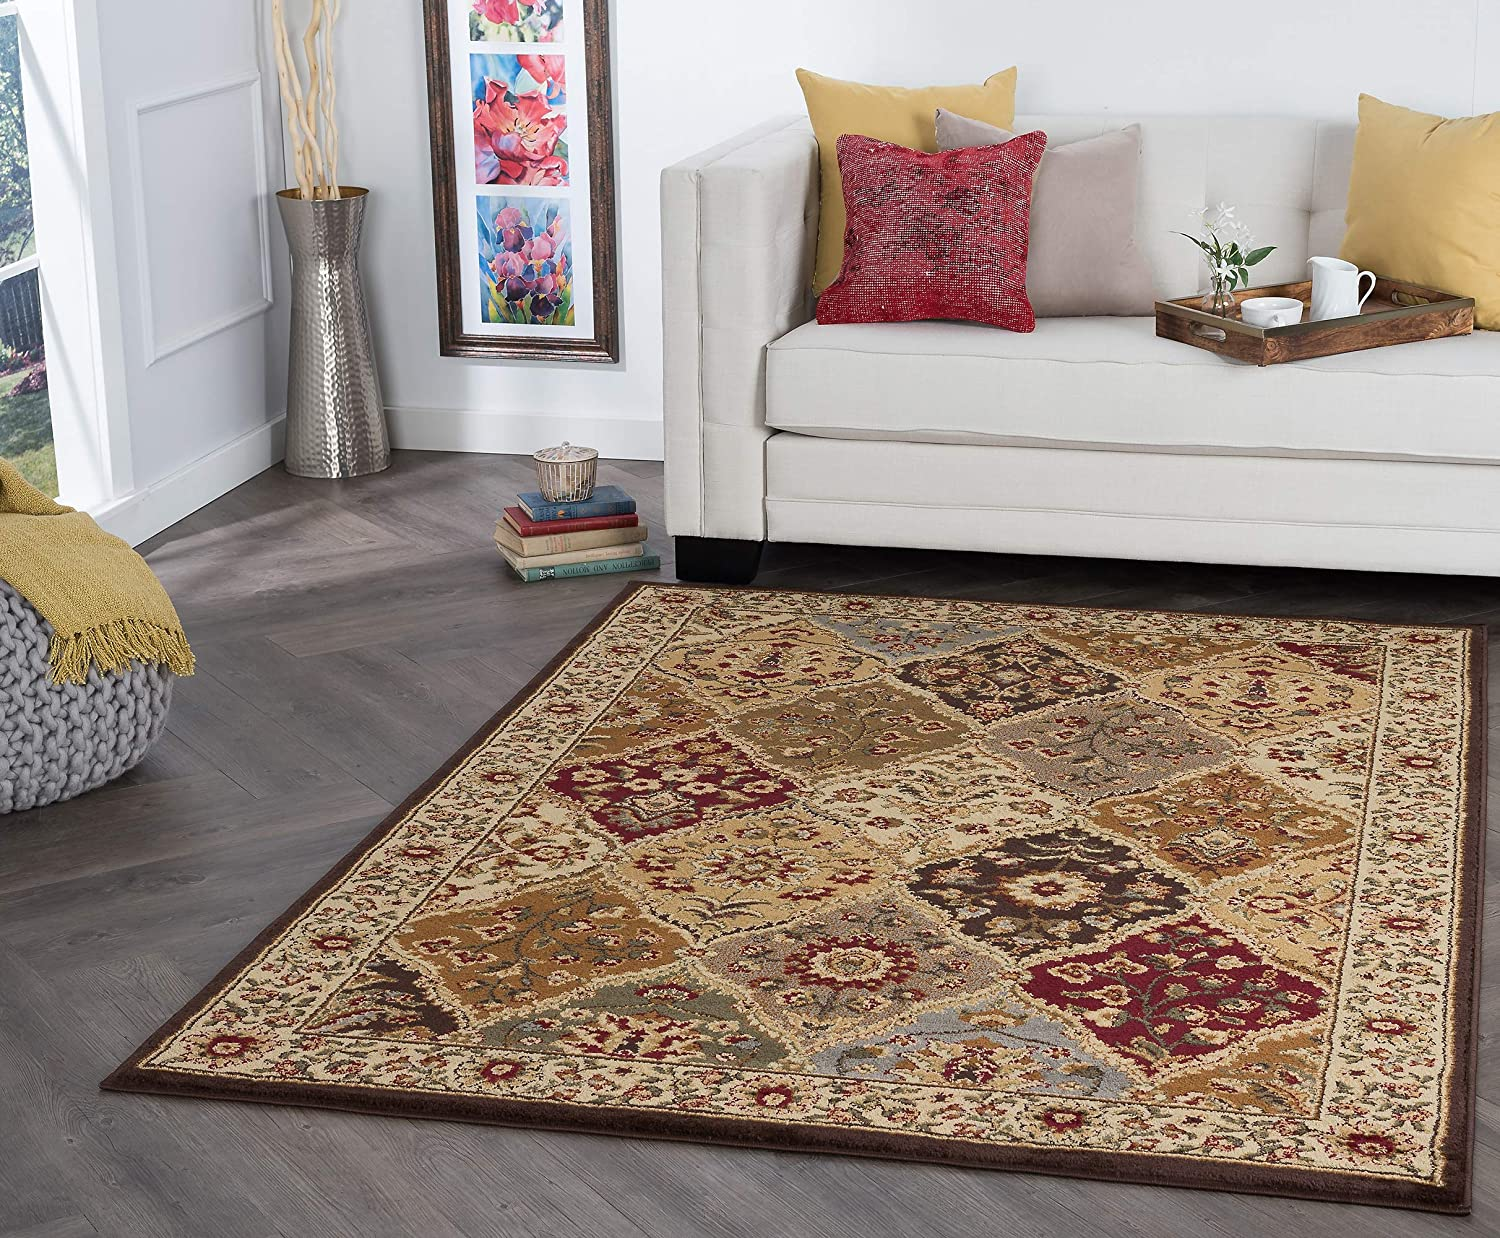 Universal Rugs 105120 Multi 8x10 Area Rug 7 Feet 6 Inch By 9 Feet 10 Inch Home Kitchen